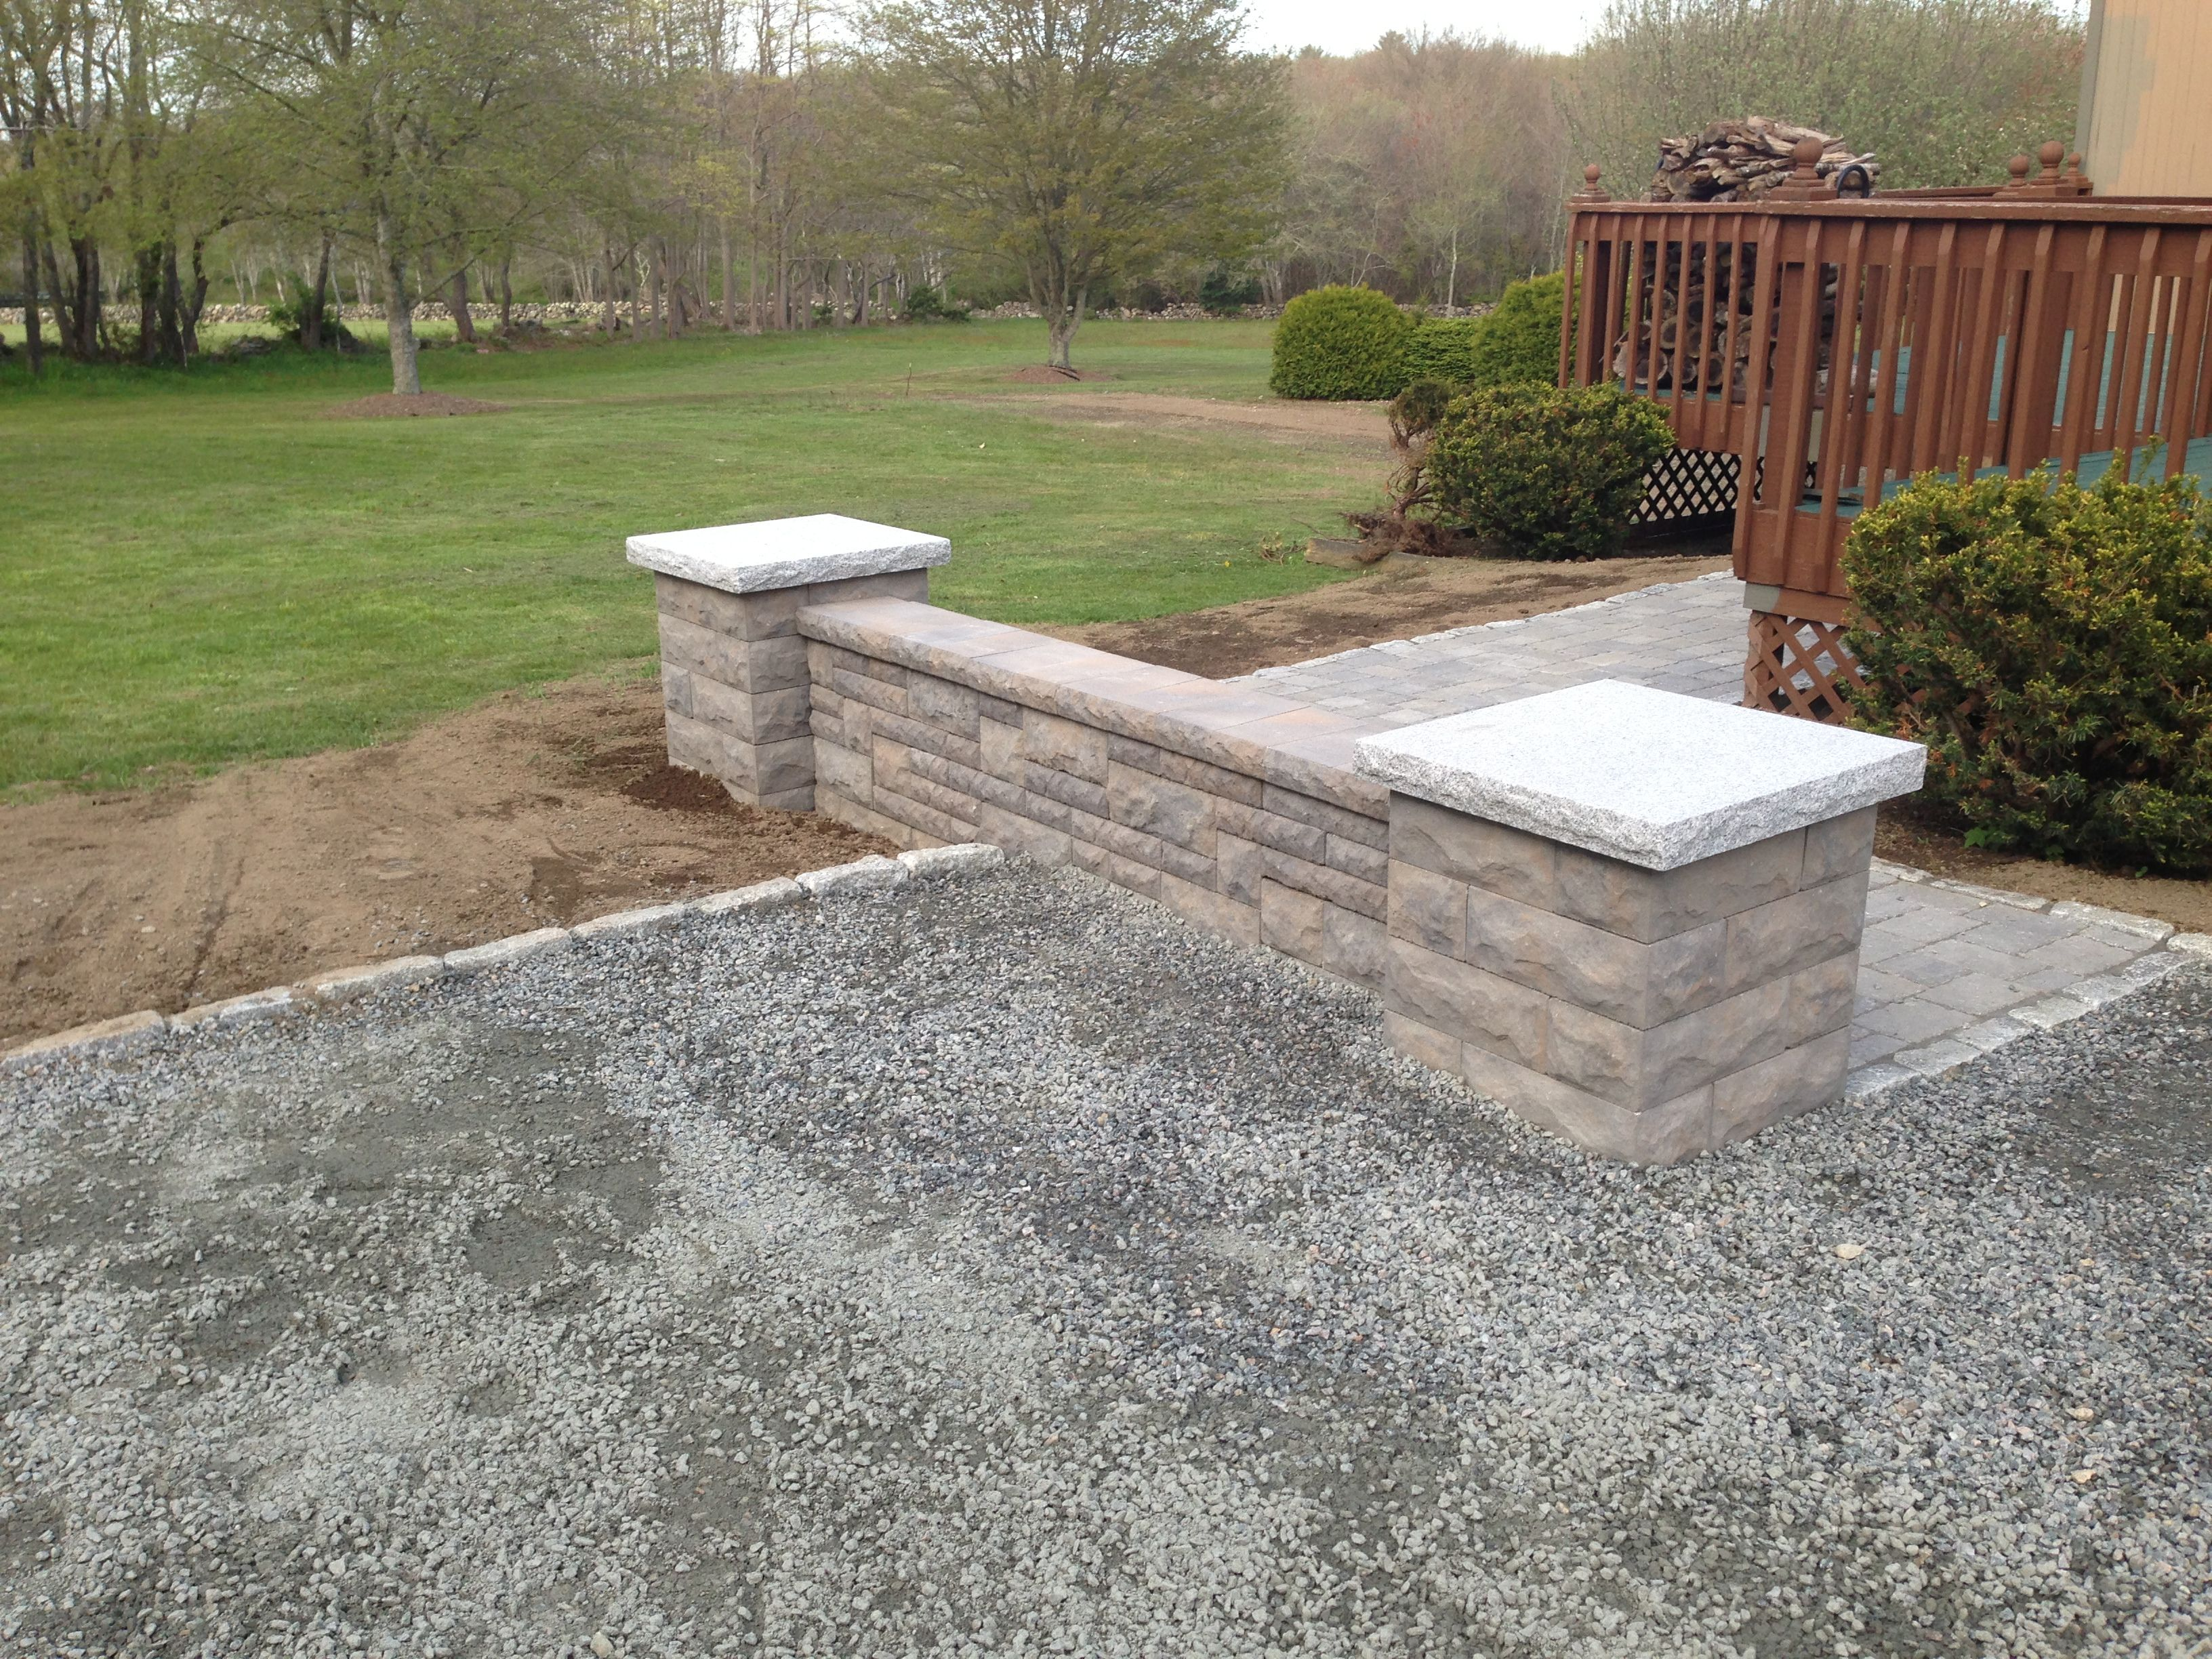 Double Sided Sitting Wall With Two Columns Capped With Granite